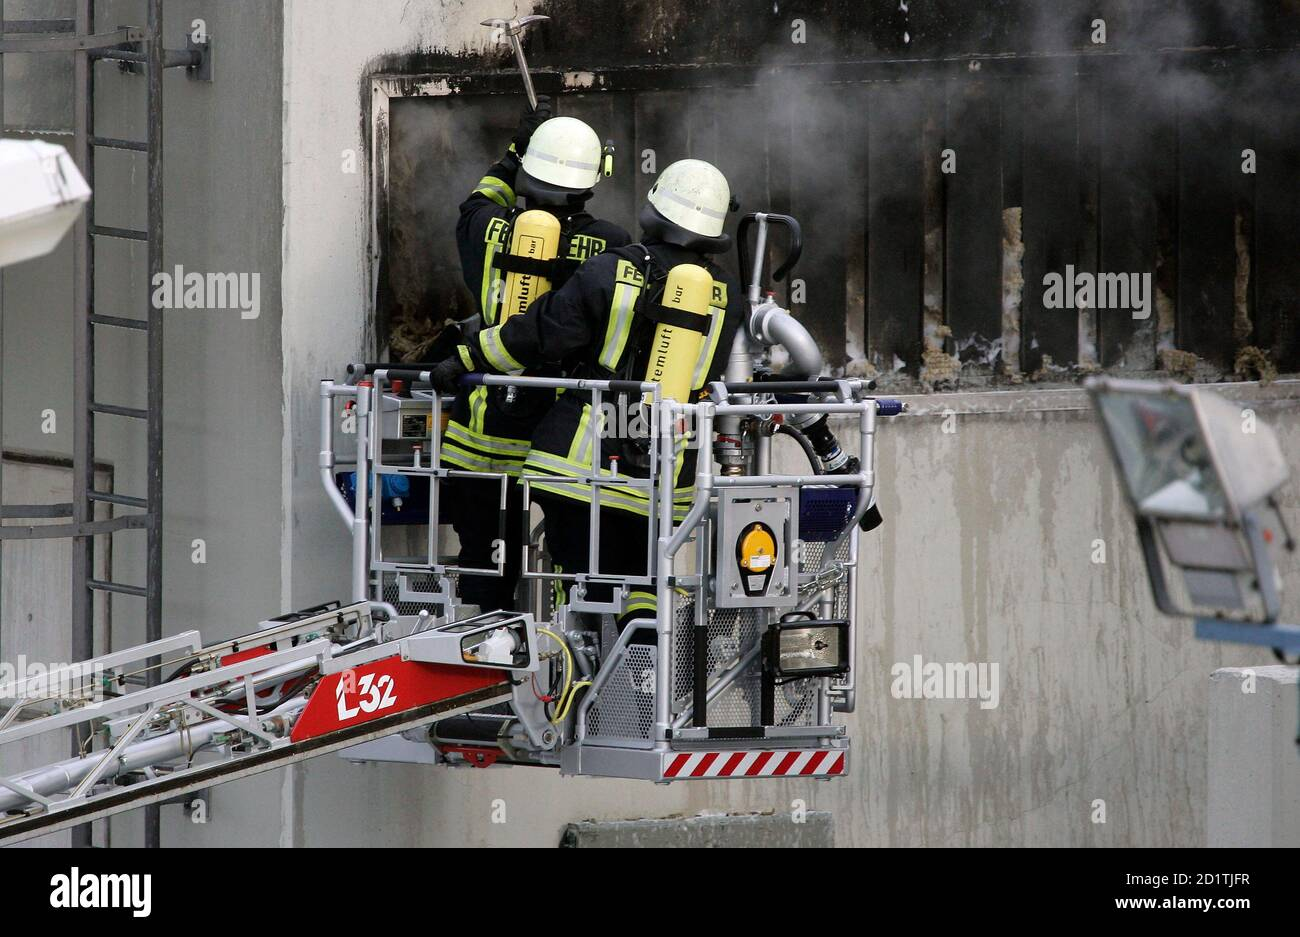 Firefighters check the fire area after extinguishing a fire at a transformer station on the site of the nuclear power plant Kruemmel near Geesthacht June 28, 2007. A fire broke out close to a nuclear plant in northern Germany on Thursday but police said the Kruemmel reactor, located about 30 km (20 miles) south-east of Hamburg, was unaffected.   REUTERS/Morris Mac Matzen (GERMANY) Stock Photo